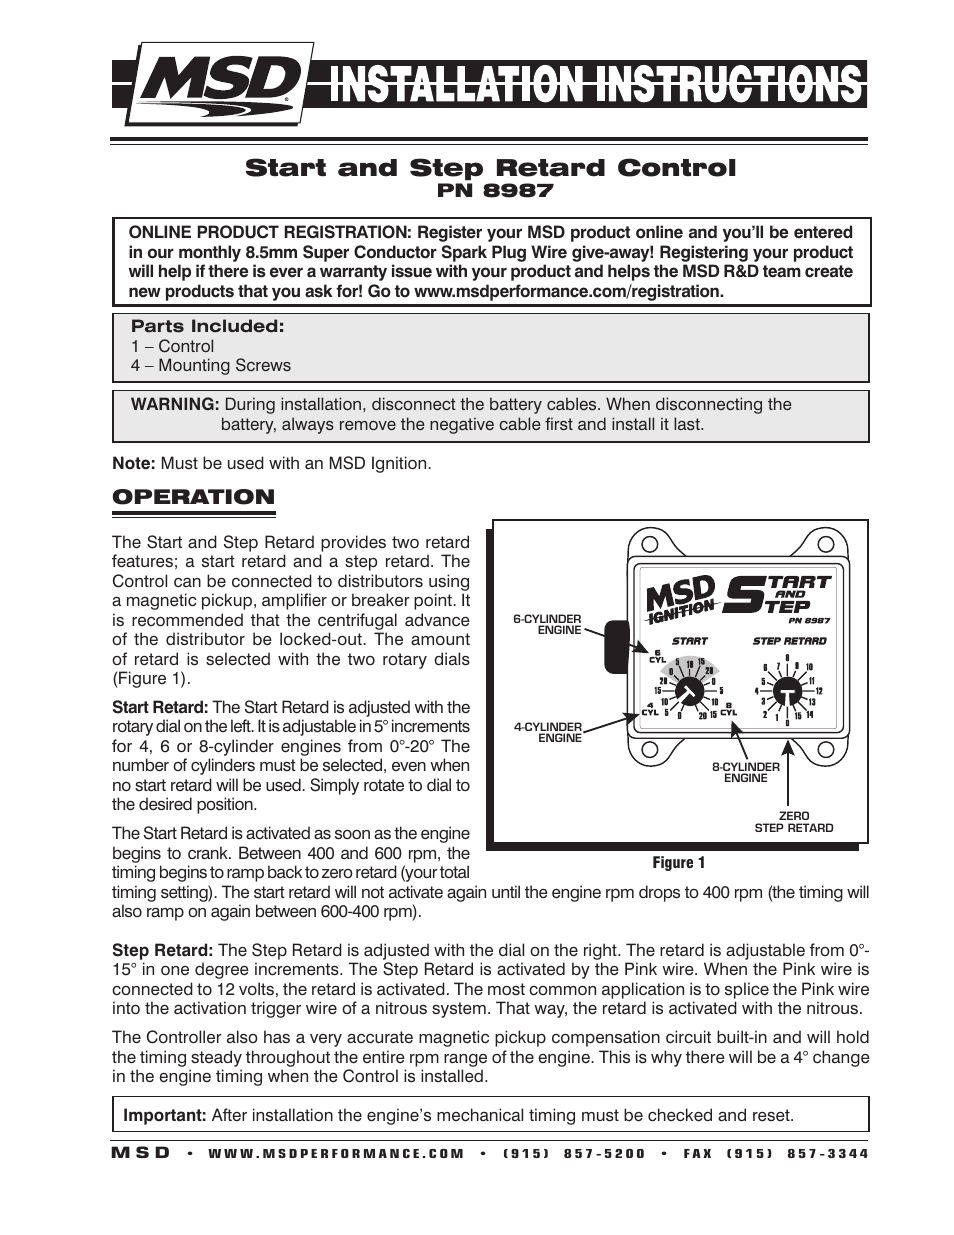 msd 8987 start and step timing control installation page1 msd 8987 start and step timing control installation user manual msd timing control wiring diagram at pacquiaovsvargaslive.co